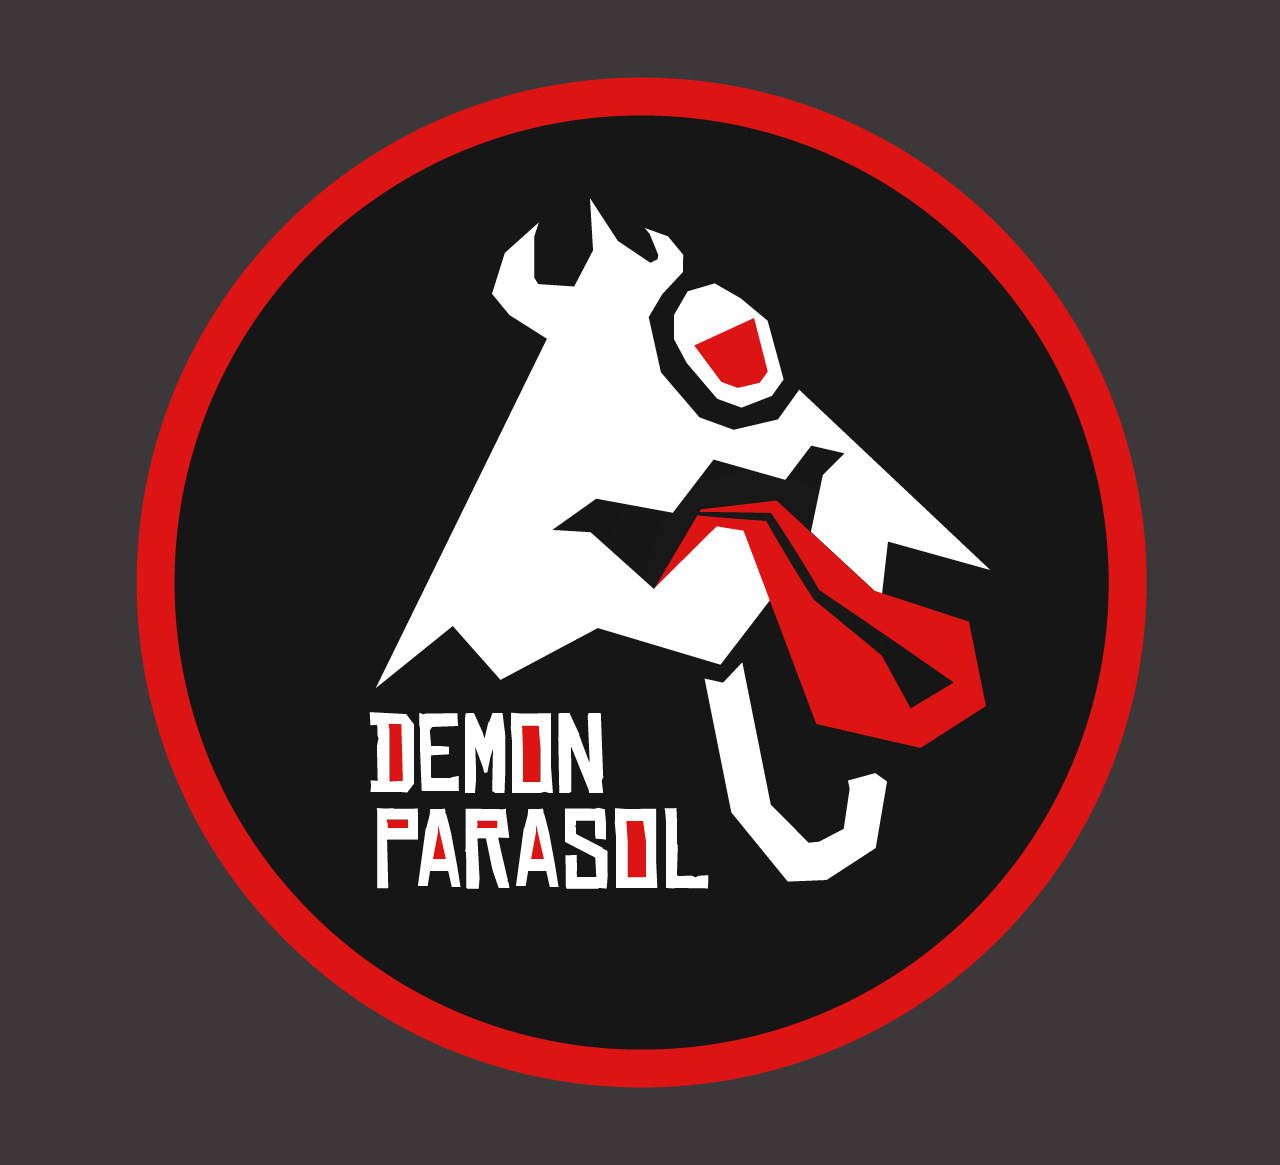 demon-parasol-badge